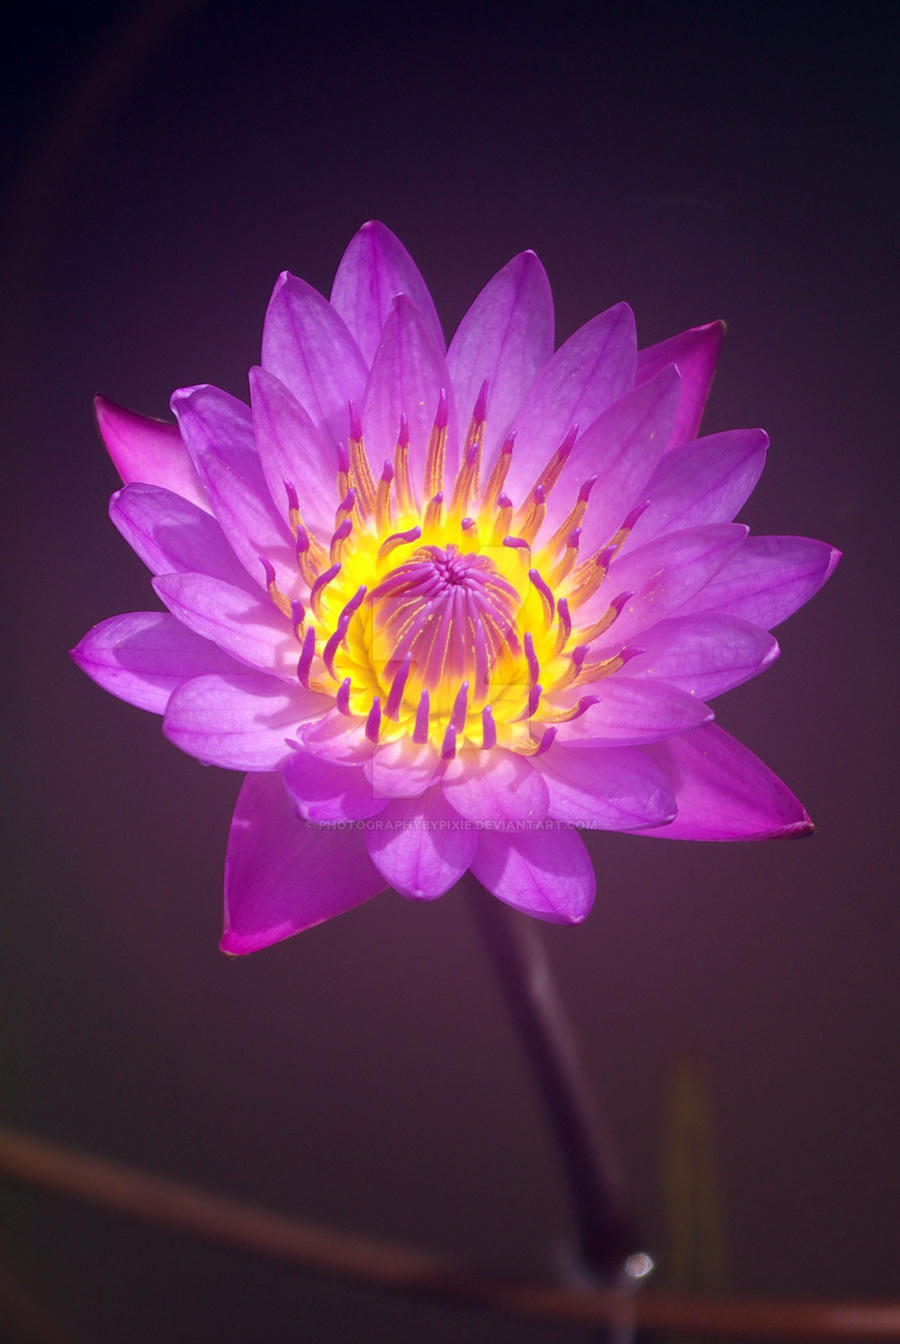 Purple lotus flower by photographybypixie on deviantart purple lotus flower by photographybypixie purple lotus flower by photographybypixie mightylinksfo